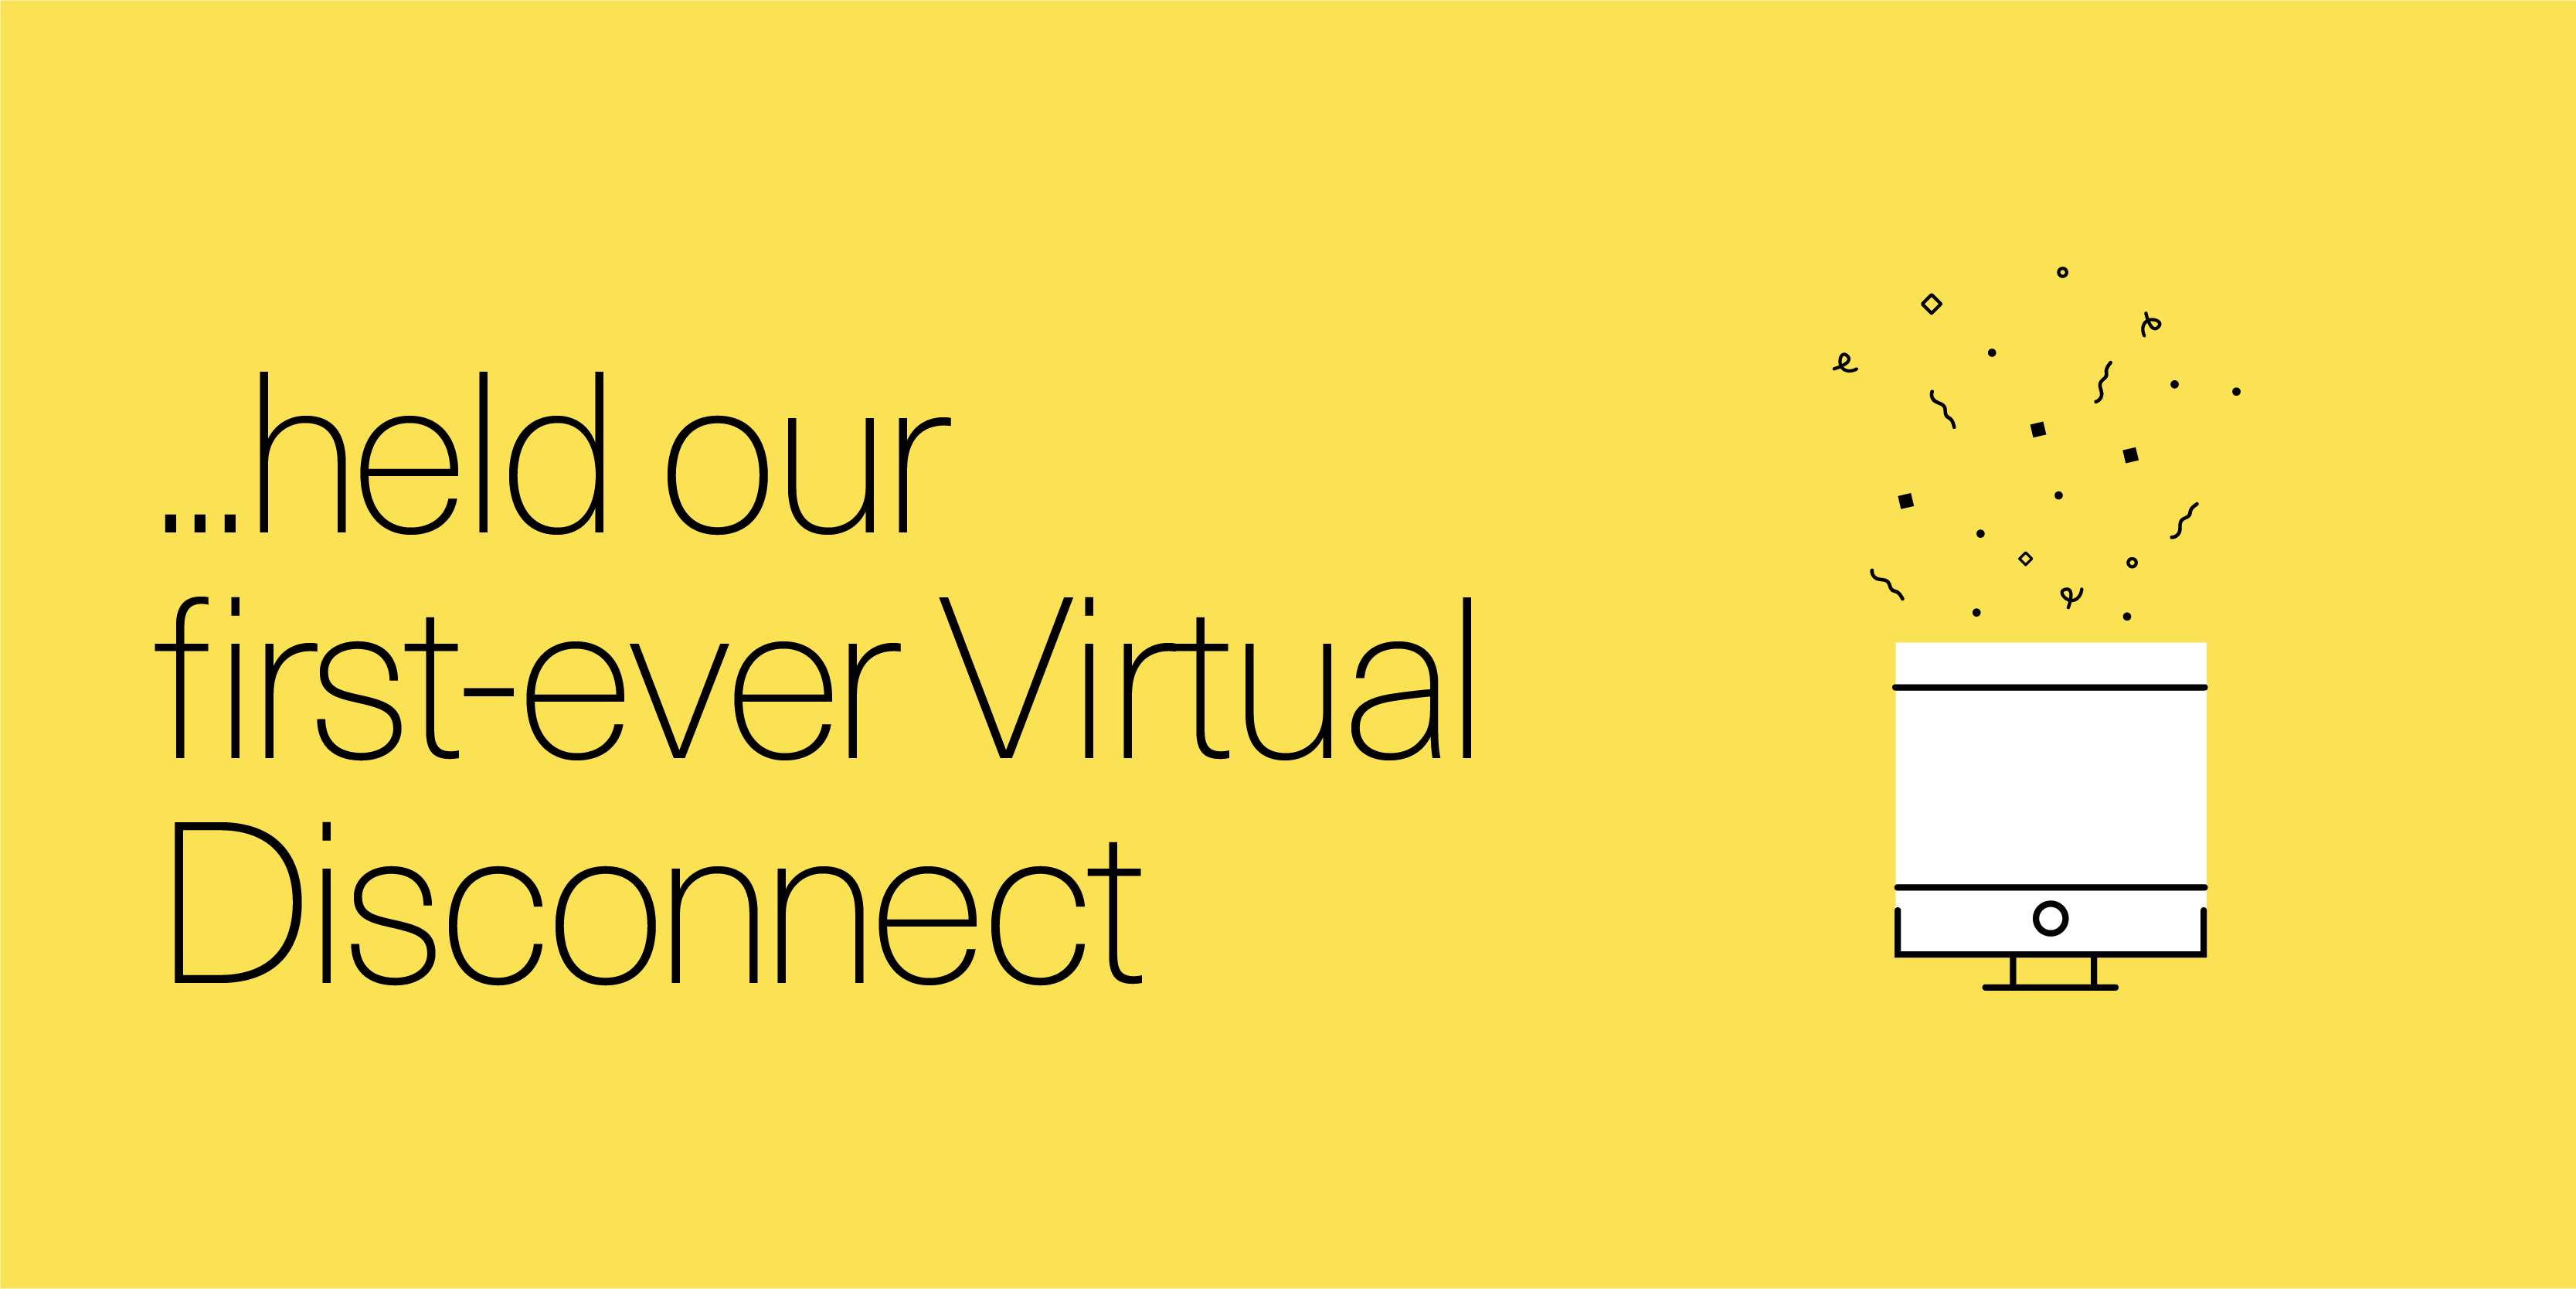 held our first-ever Virtual Disconnect